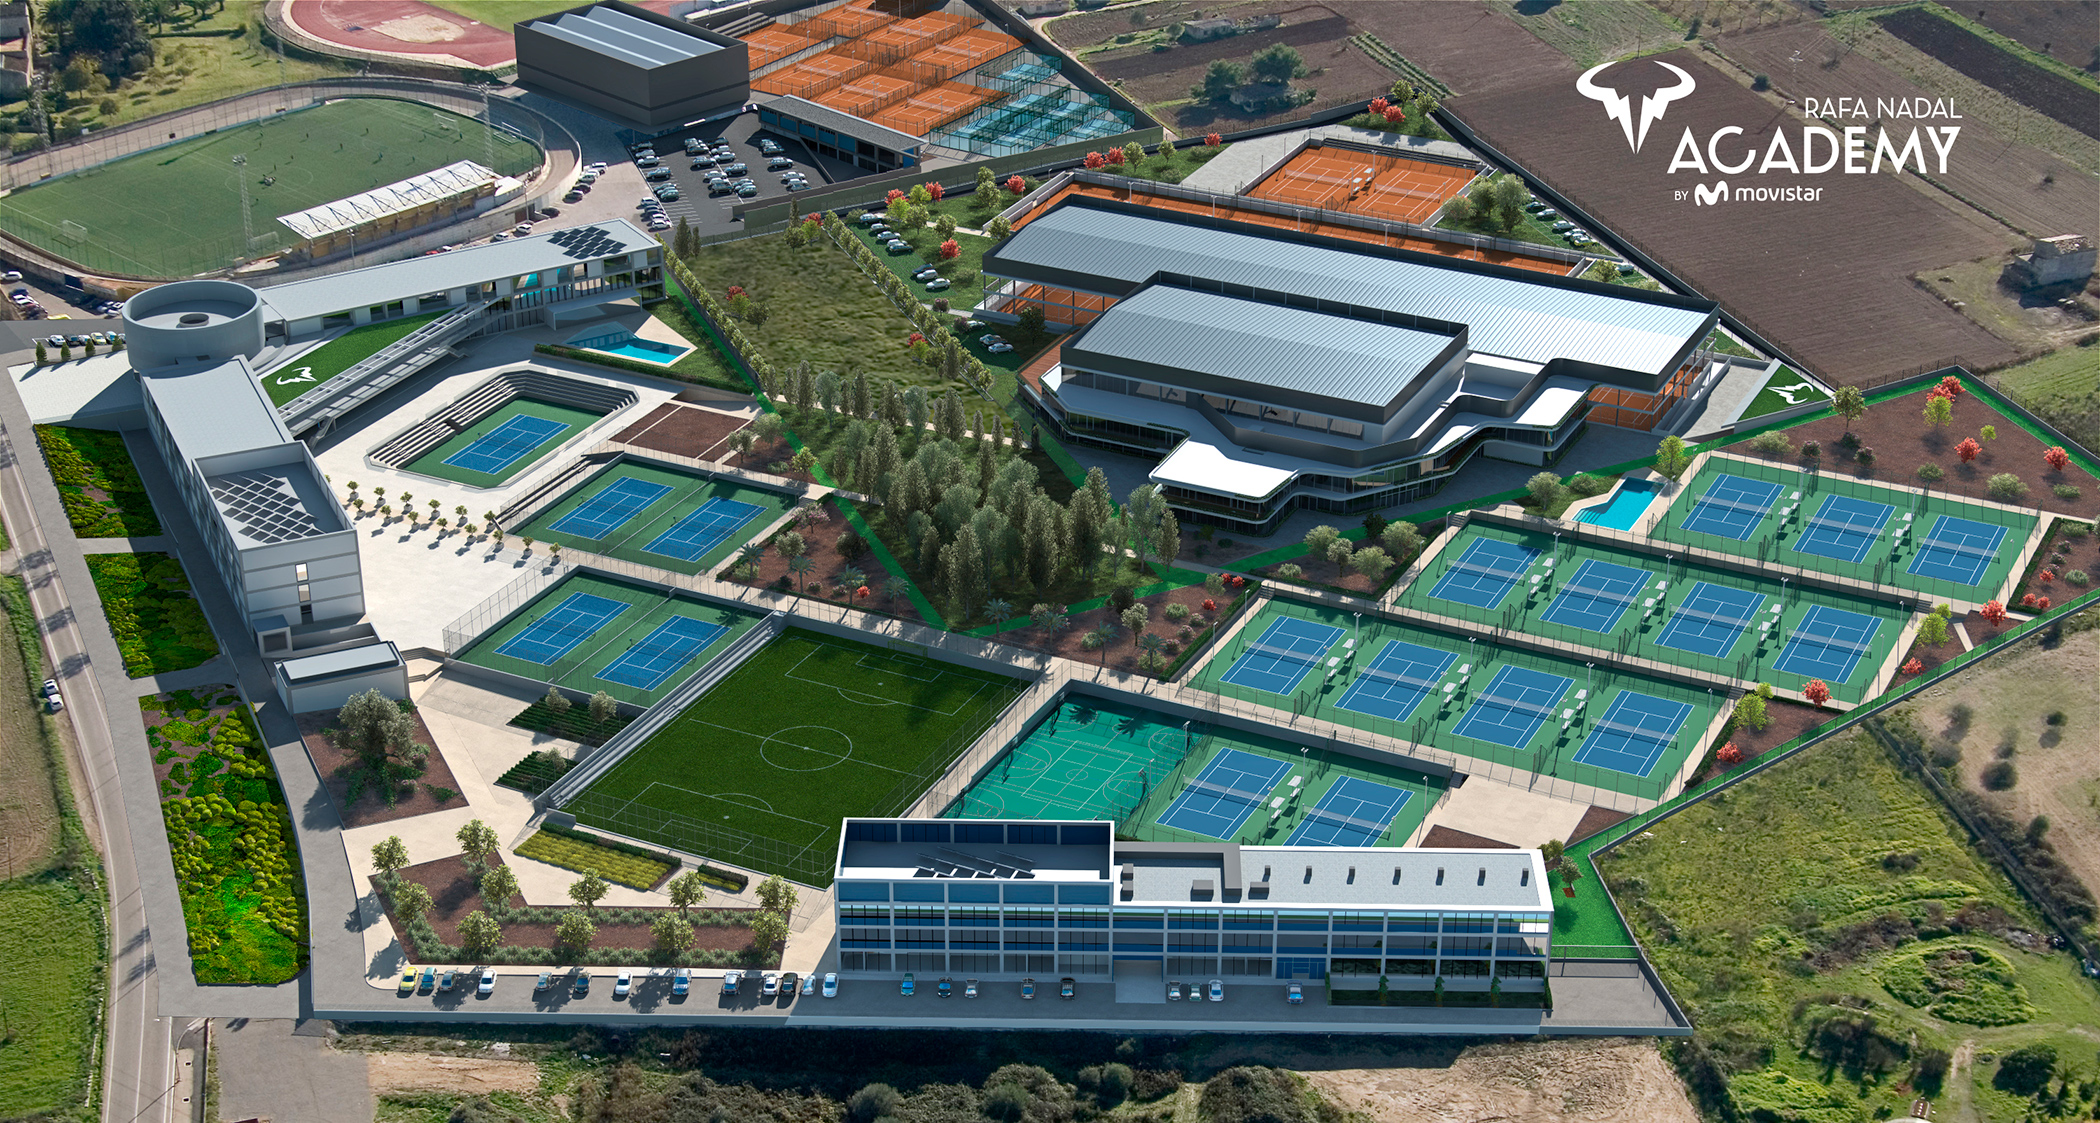 The Rafa Nadal Academy by Movistar consolidates its growth with the expansion of its facilities